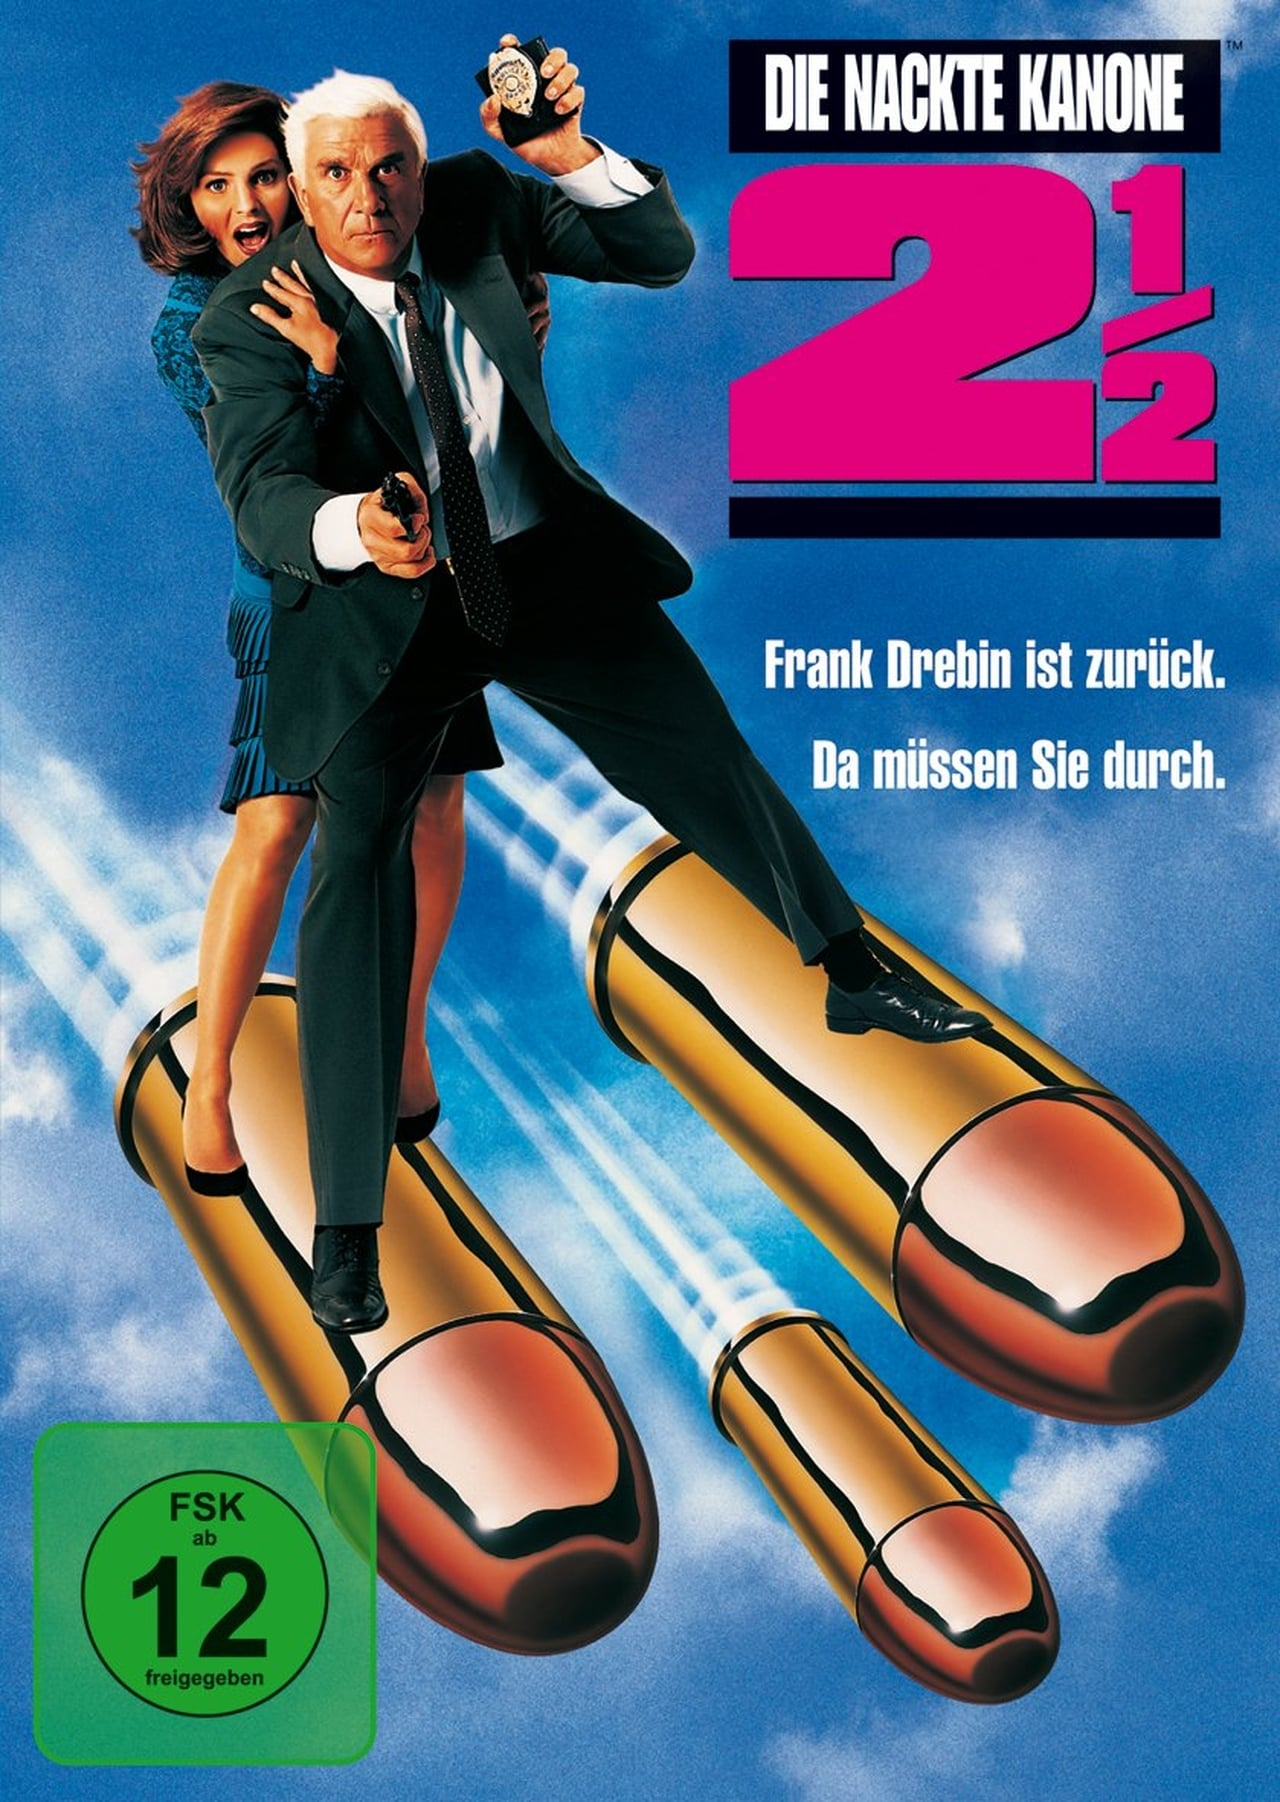 The Naked Gun 2½: The Smell of Fear (1991) vhs movie cover